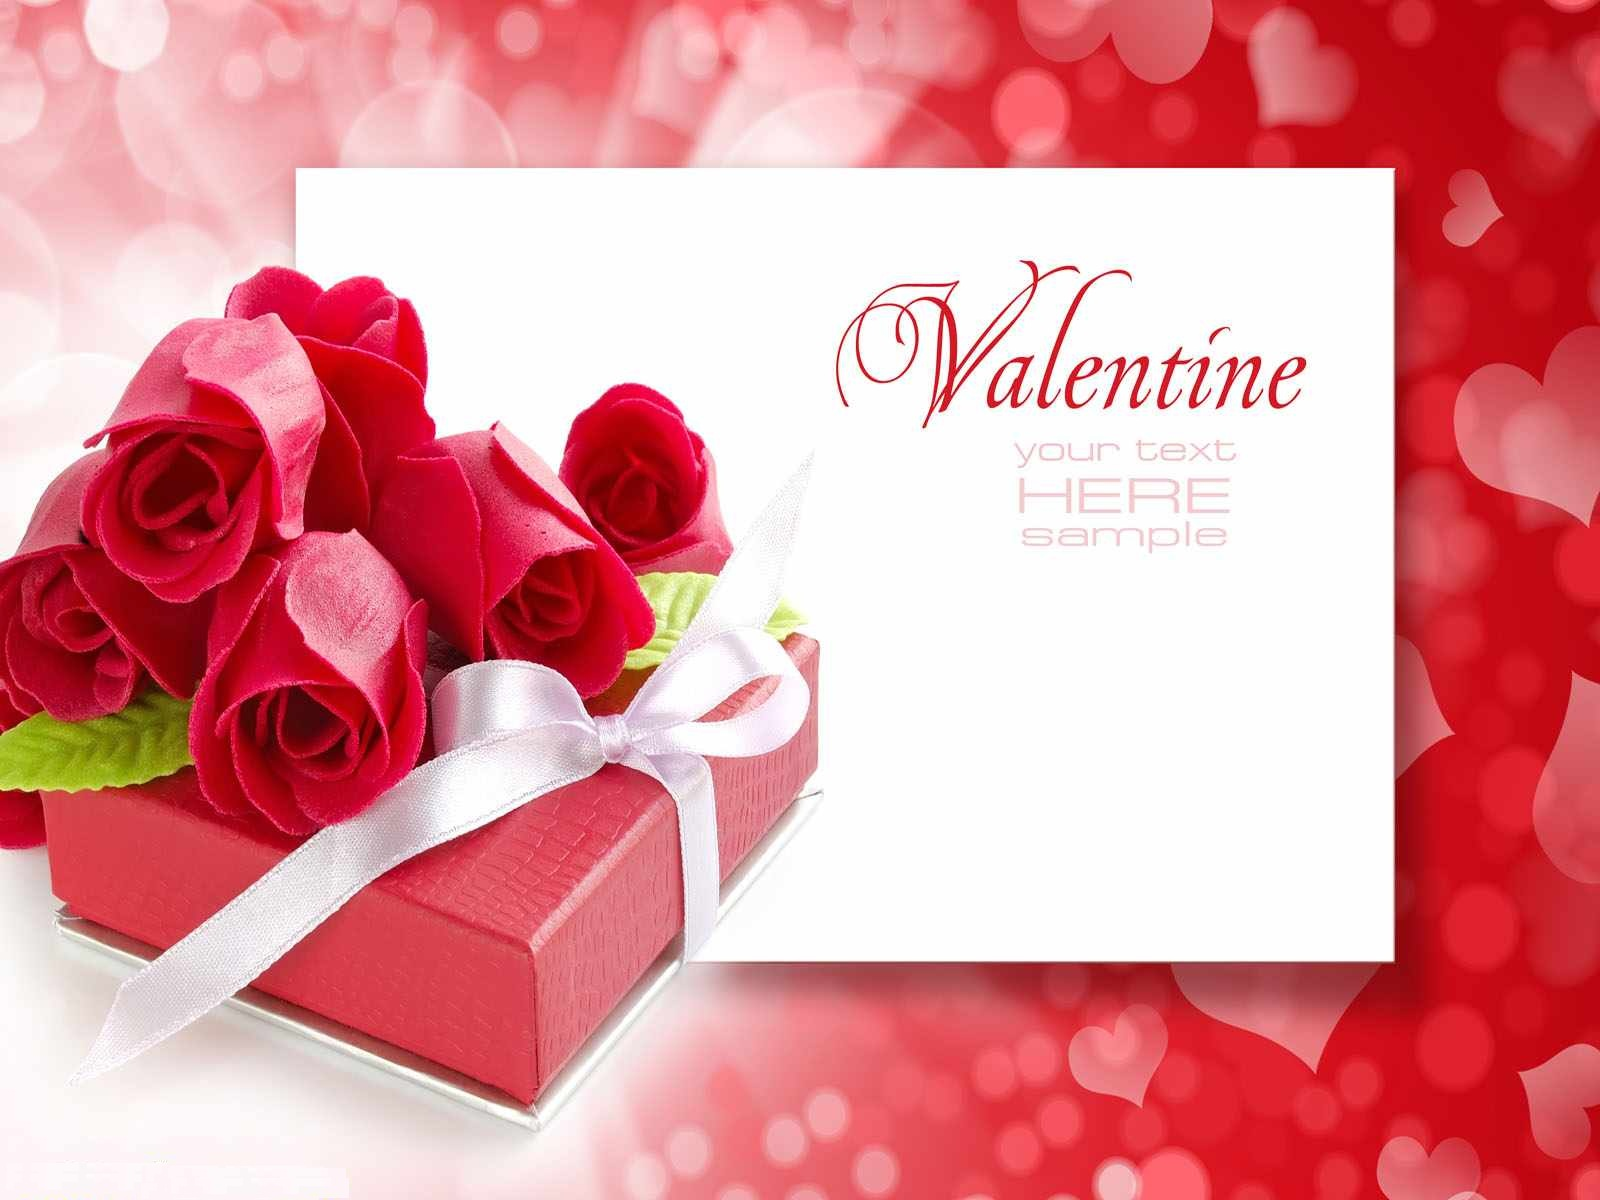 Happy valentines day hd wallpaper images greetings 2013 for What to put on a valentines card